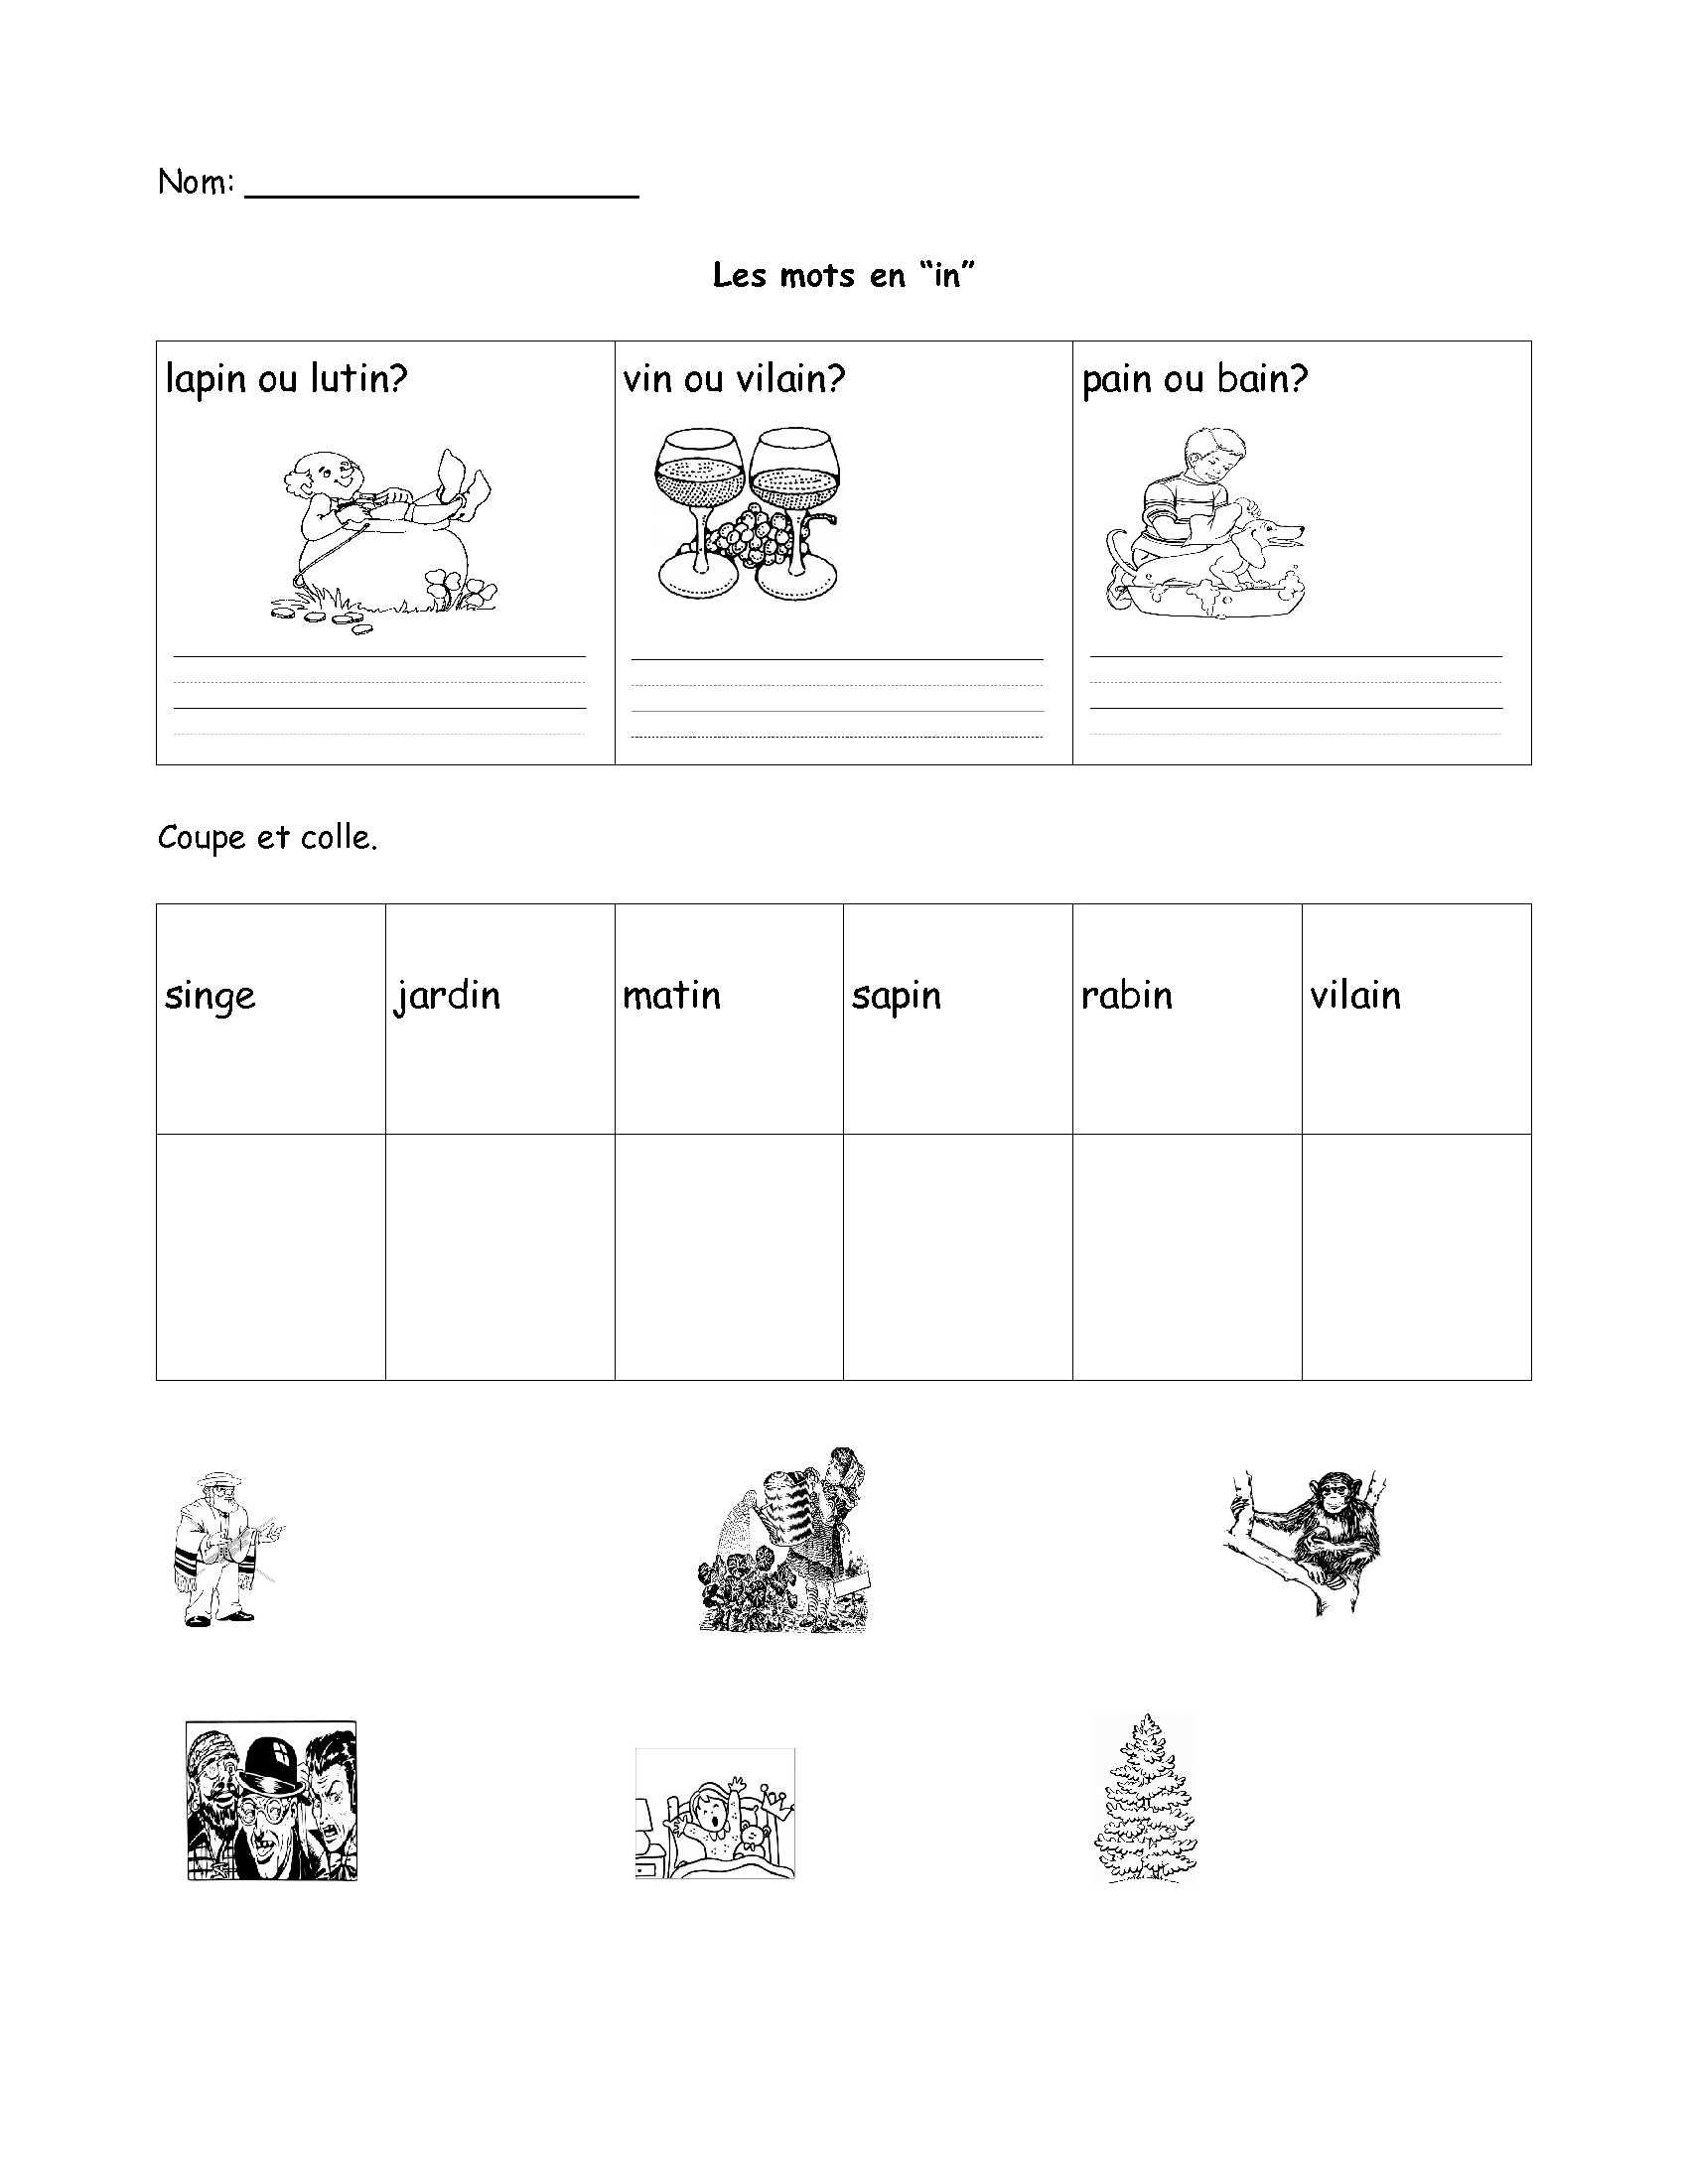 Free French Worksheet Grade 1 Grade 2 Grade 3 Fsl